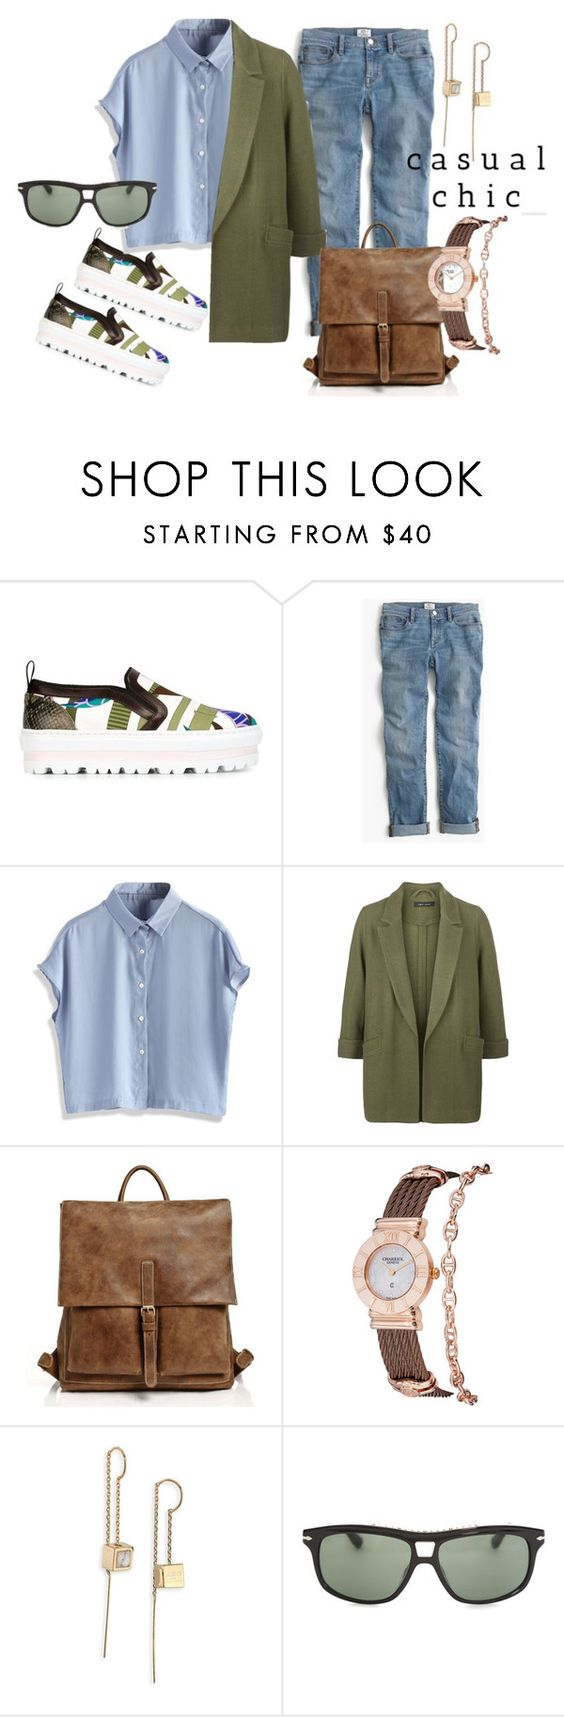 """""""Casual"""" by tanyakountz ❤ liked on Polyvore featuring MSGM, J.Crew, Chicwish, New Look, Charriol, Alexis Bittar and Persol"""